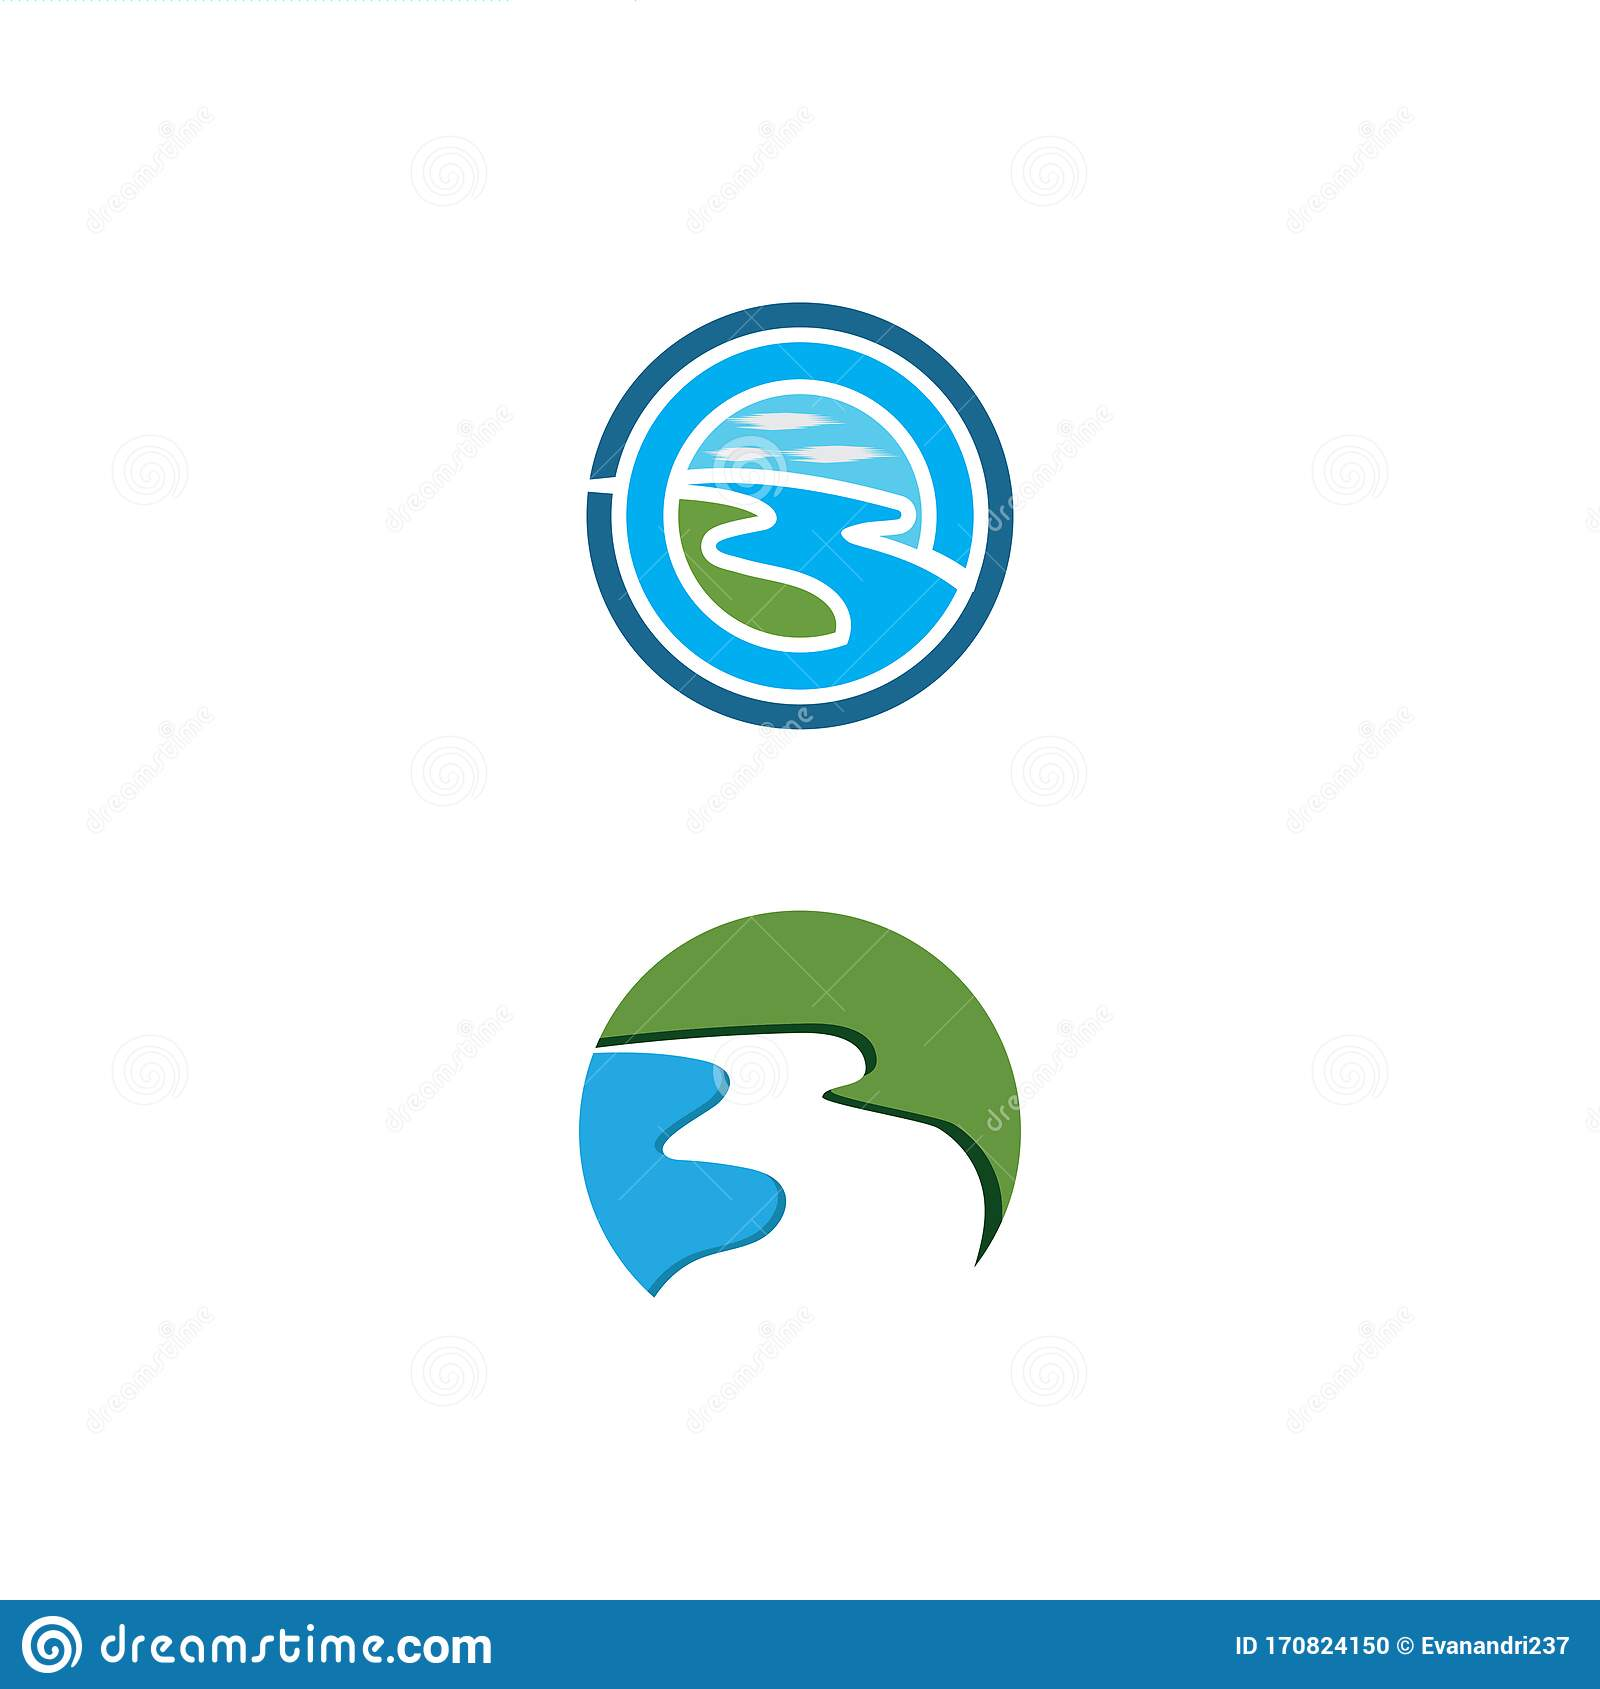 river vector icon illustration stock vector illustration of mountain isolated 170824150 dreamstime com